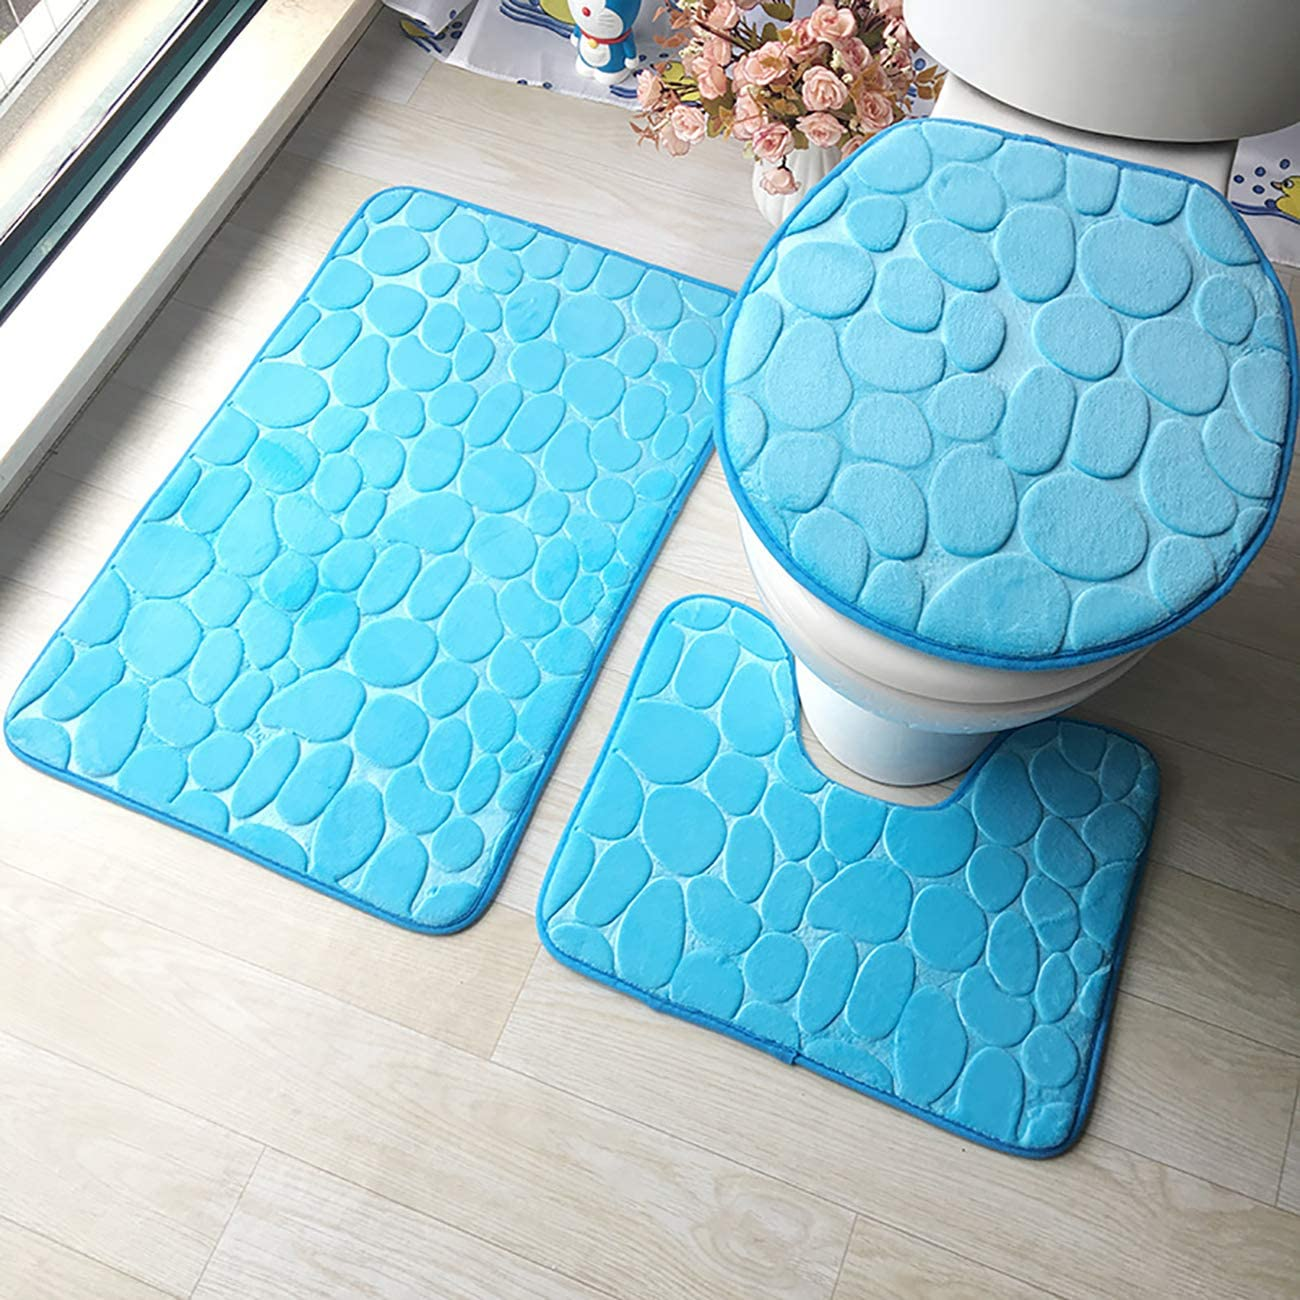 Picturesque Flannel Time sale Embossed Bathroom Mat 3pcs Toilet Lid Cover 4 years warranty